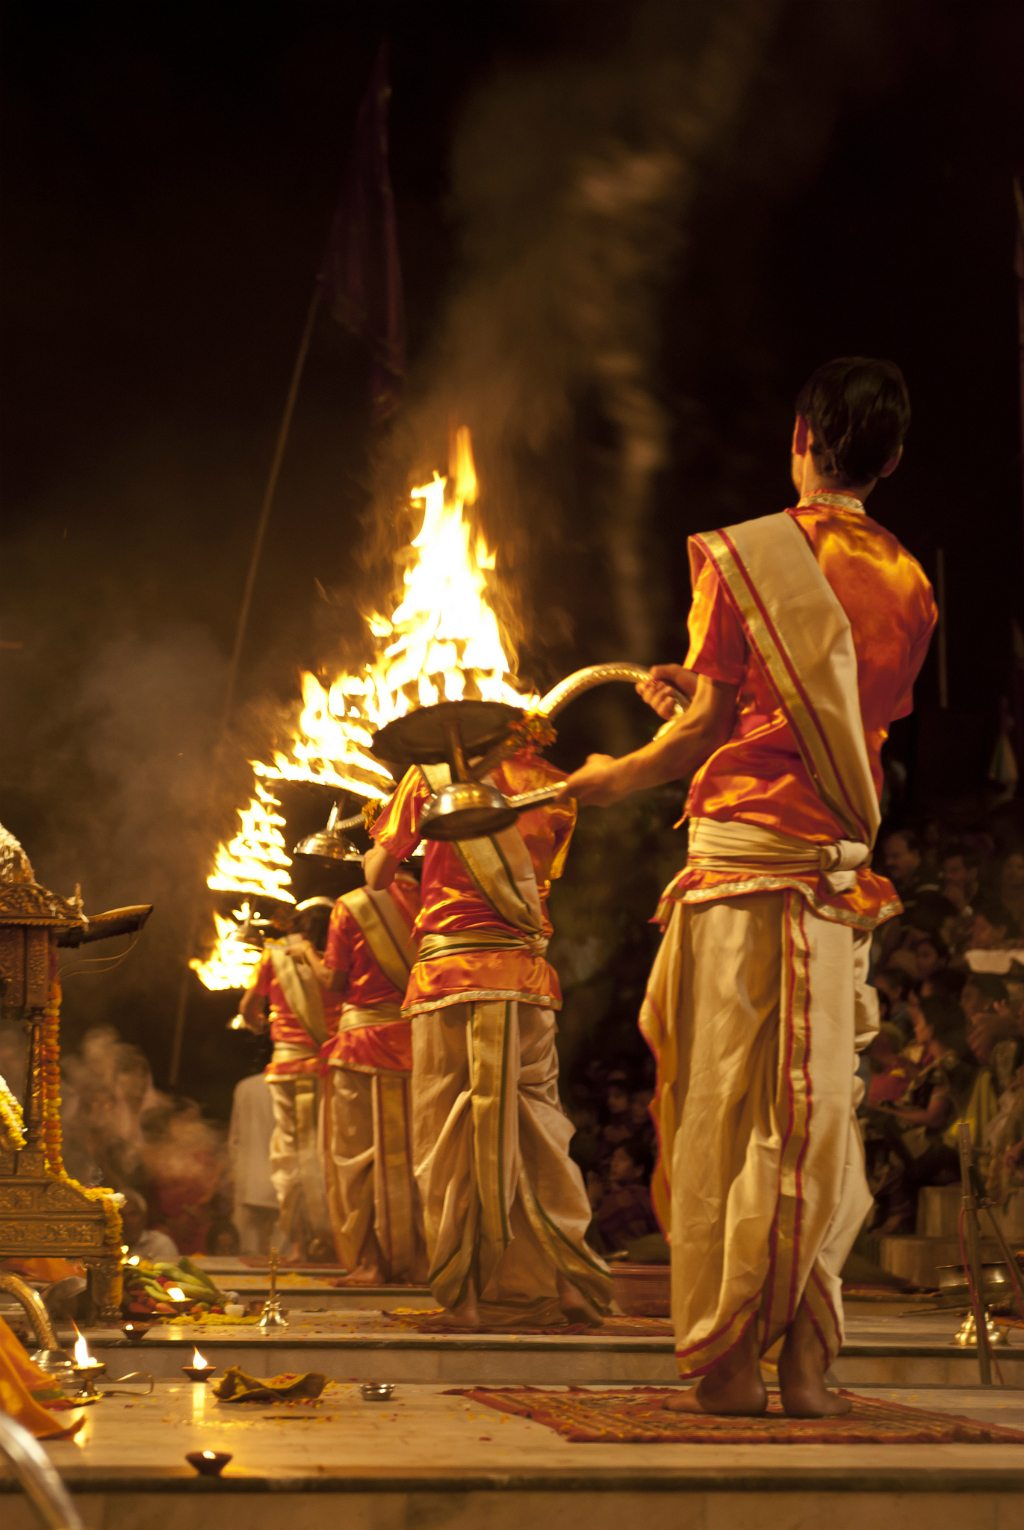 The Ganga aarti at Dashashwamedh Ghat is one of Varanasi's must-have experiences. Photo: Bobinson KB/ Flickr/ Creative Commons (bit.ly/1jxQJMa)